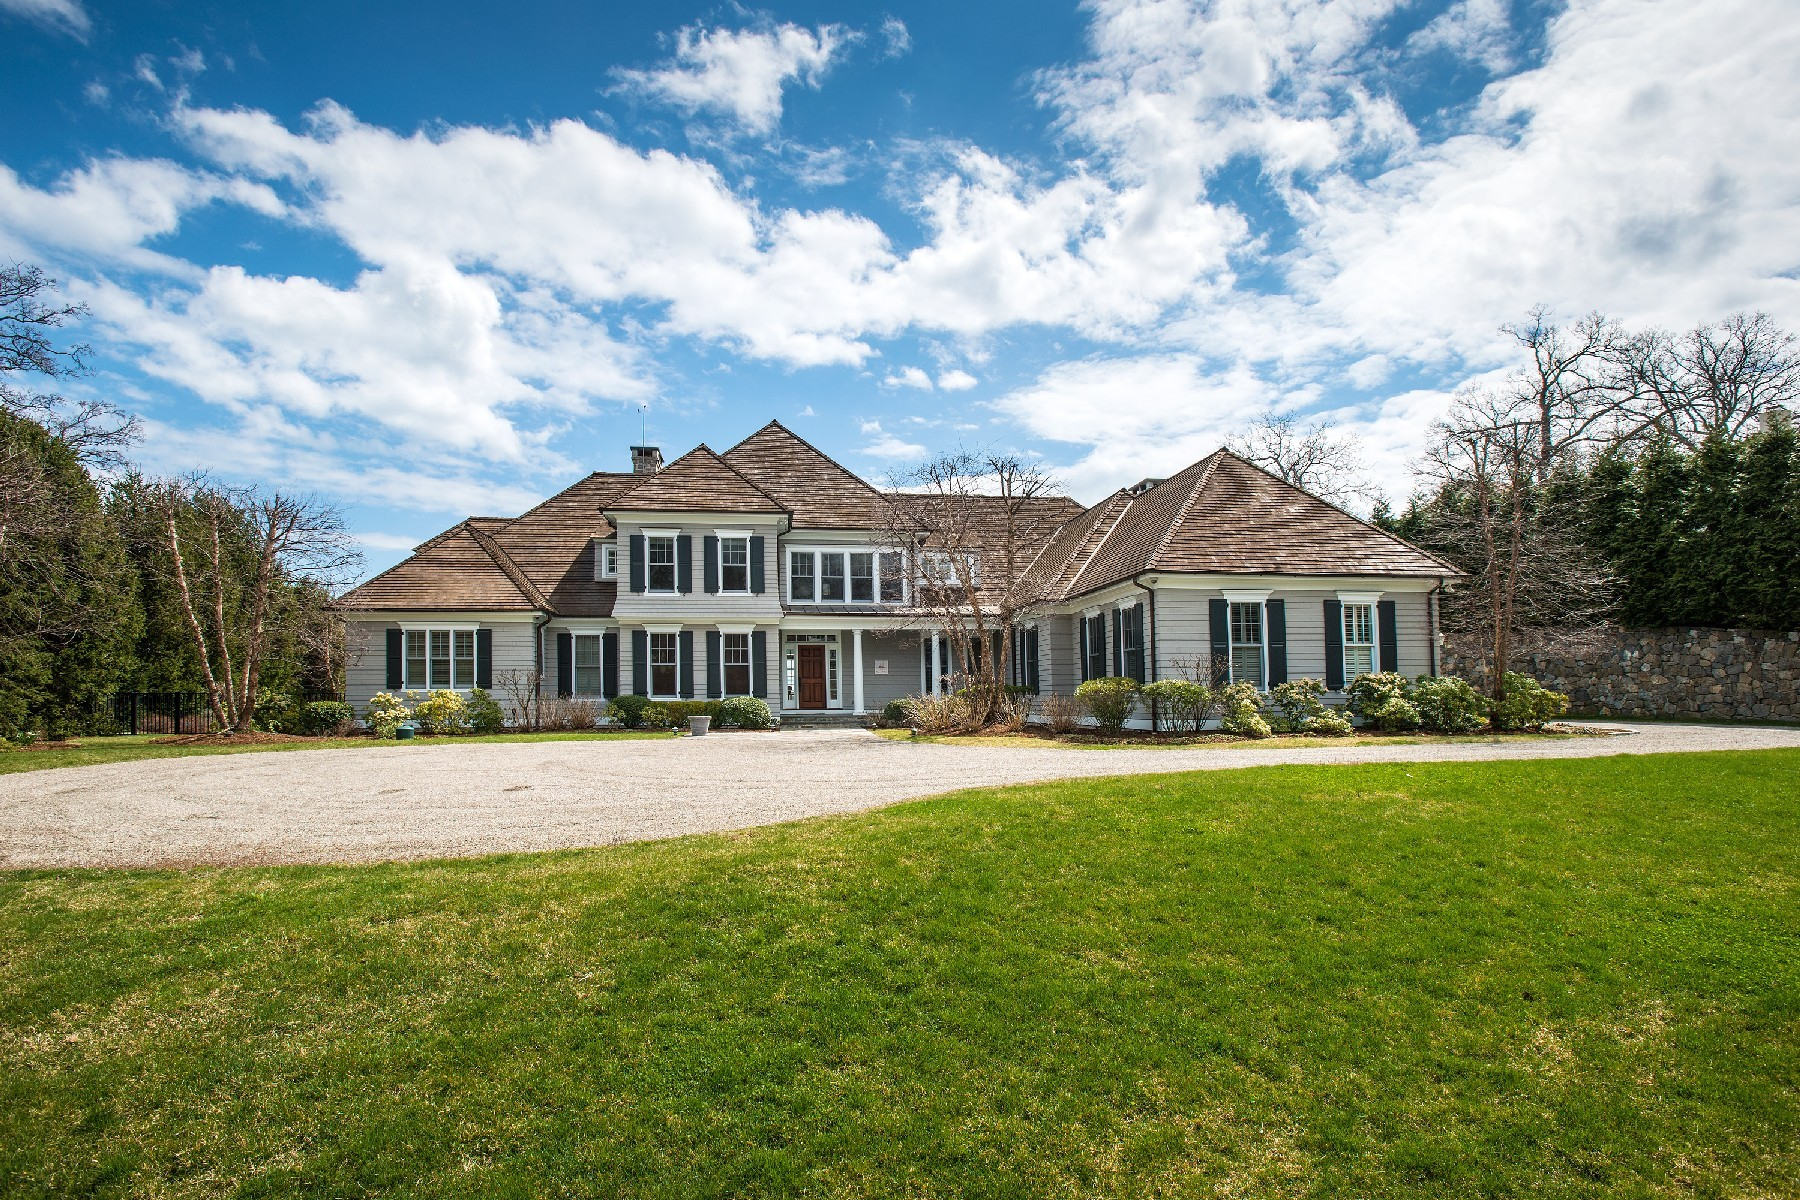 Single Family Home for Sale at Wilson Point - Spectacular Waterviews 10 Woodland Road Norwalk, Connecticut 06854 United States